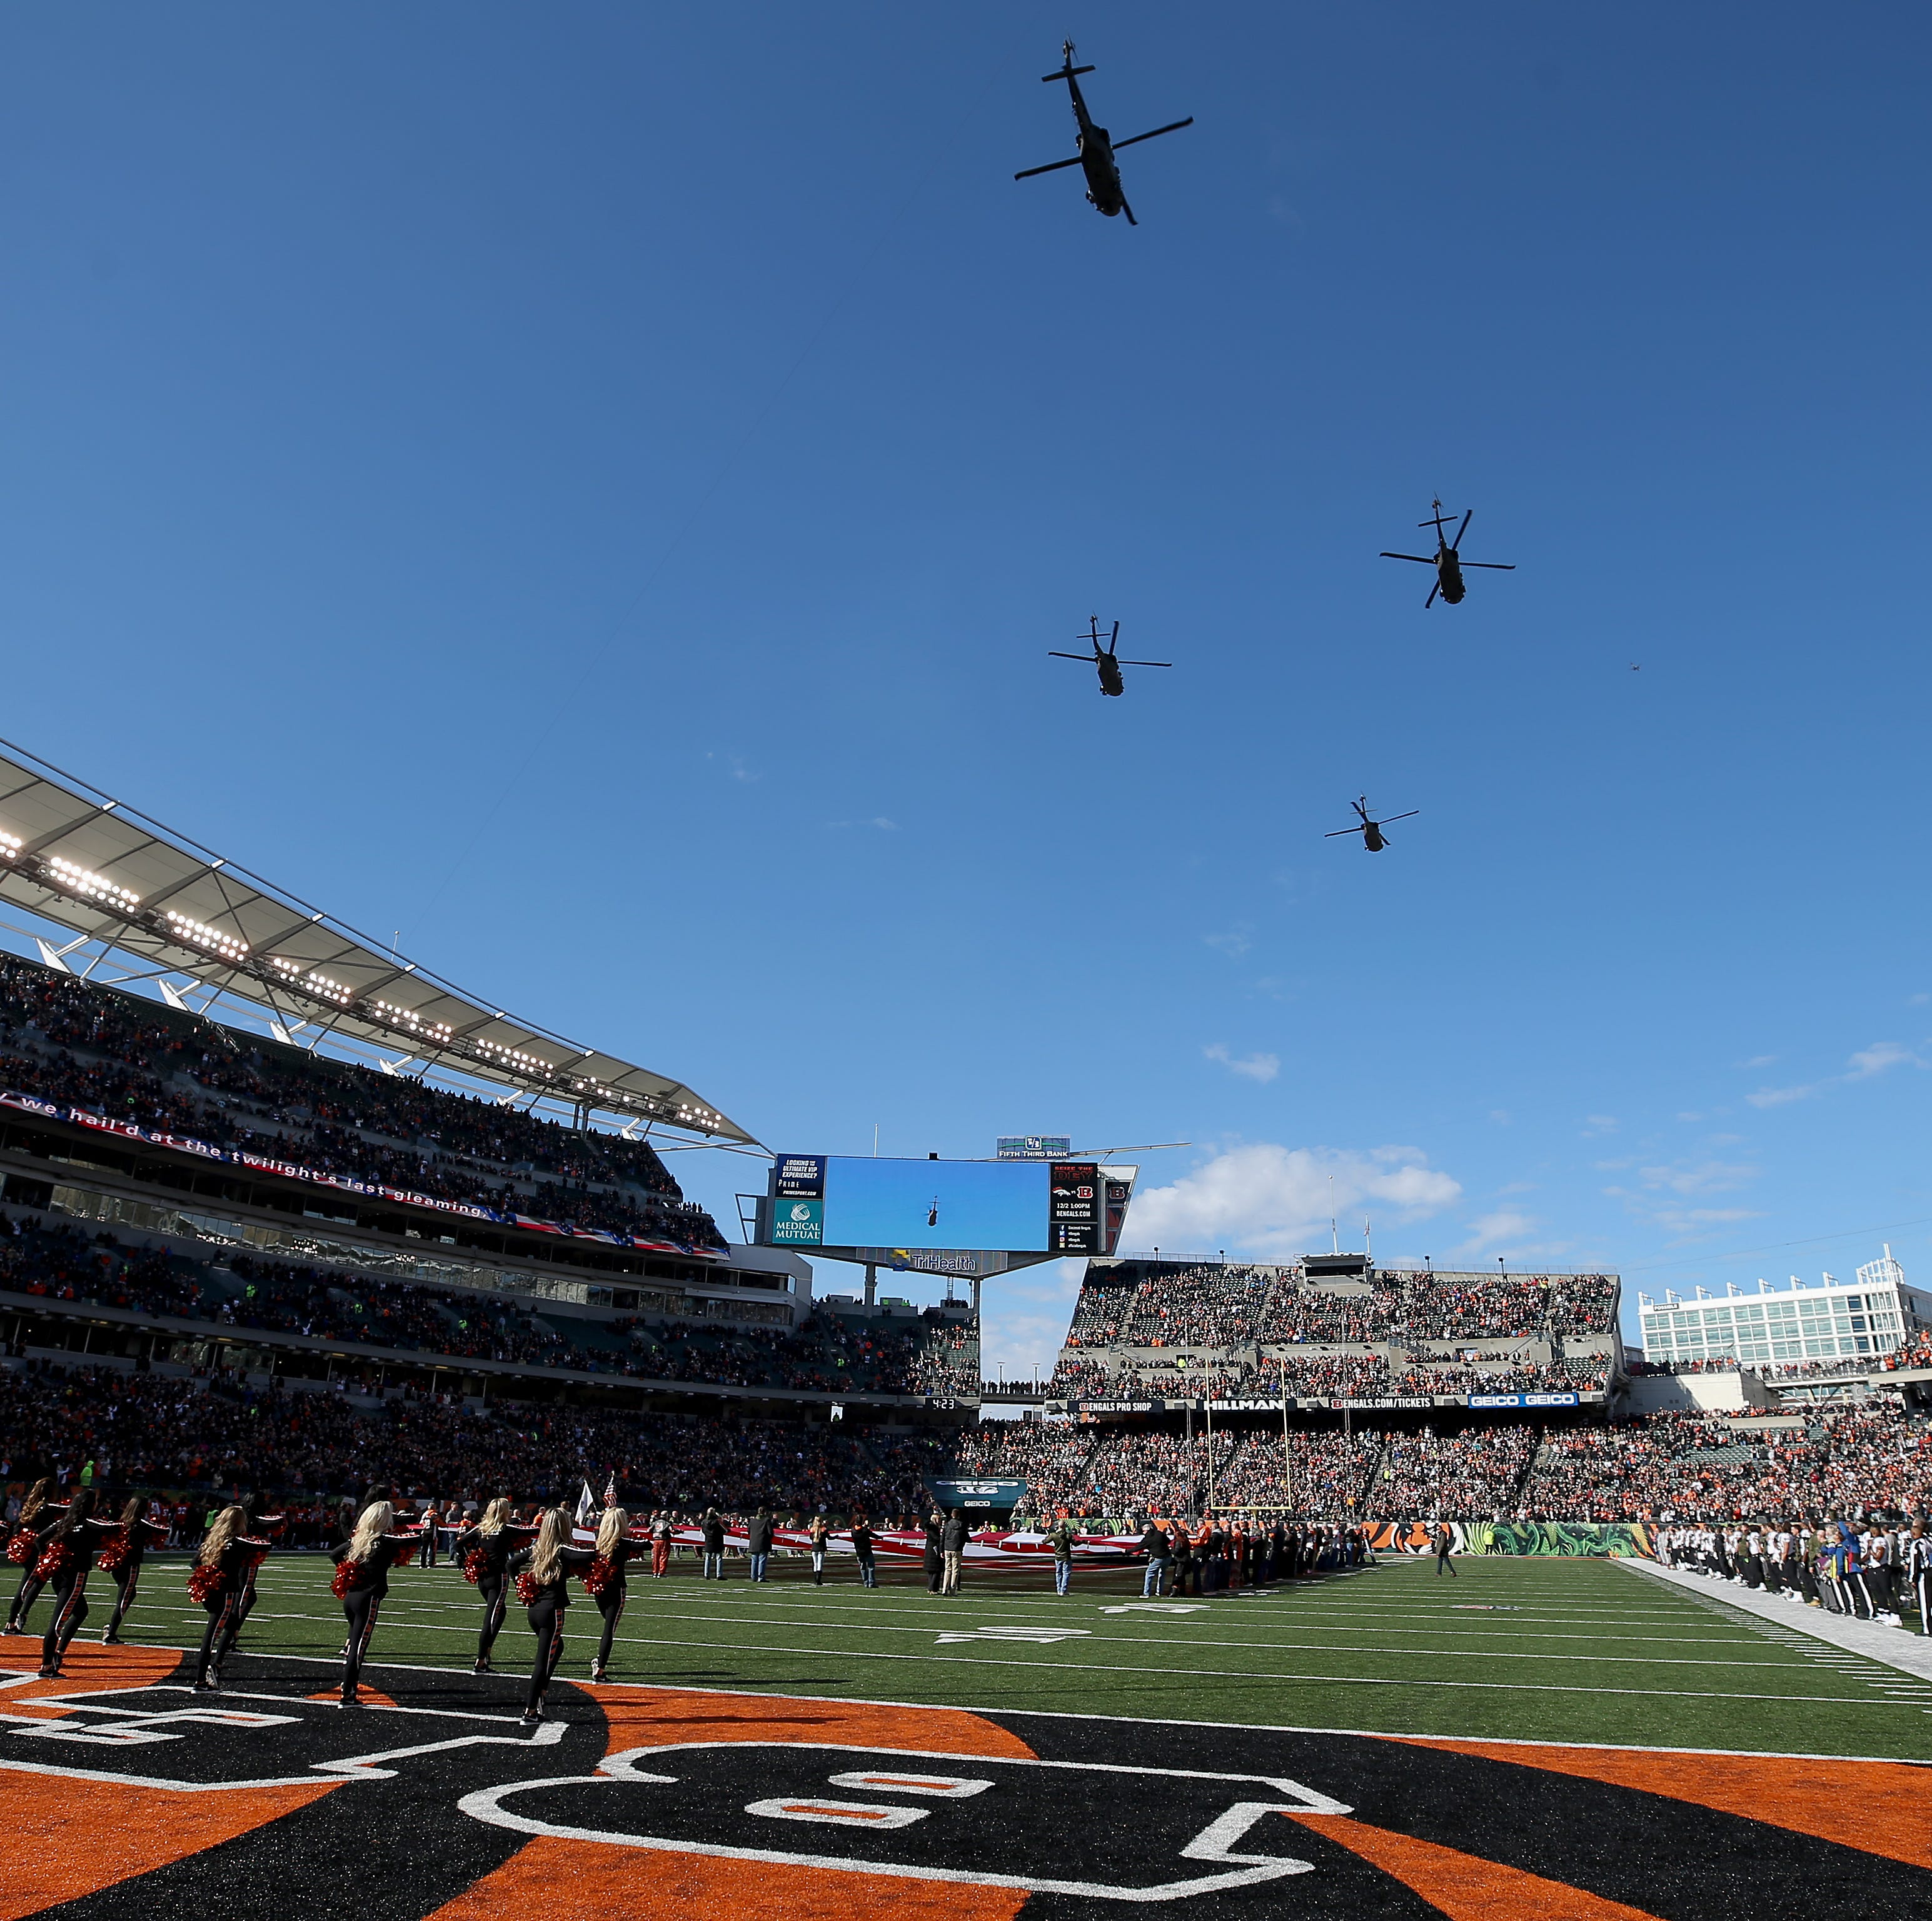 PX column: Here's why the Bengals decided to budge on Paul Brown Stadium lease